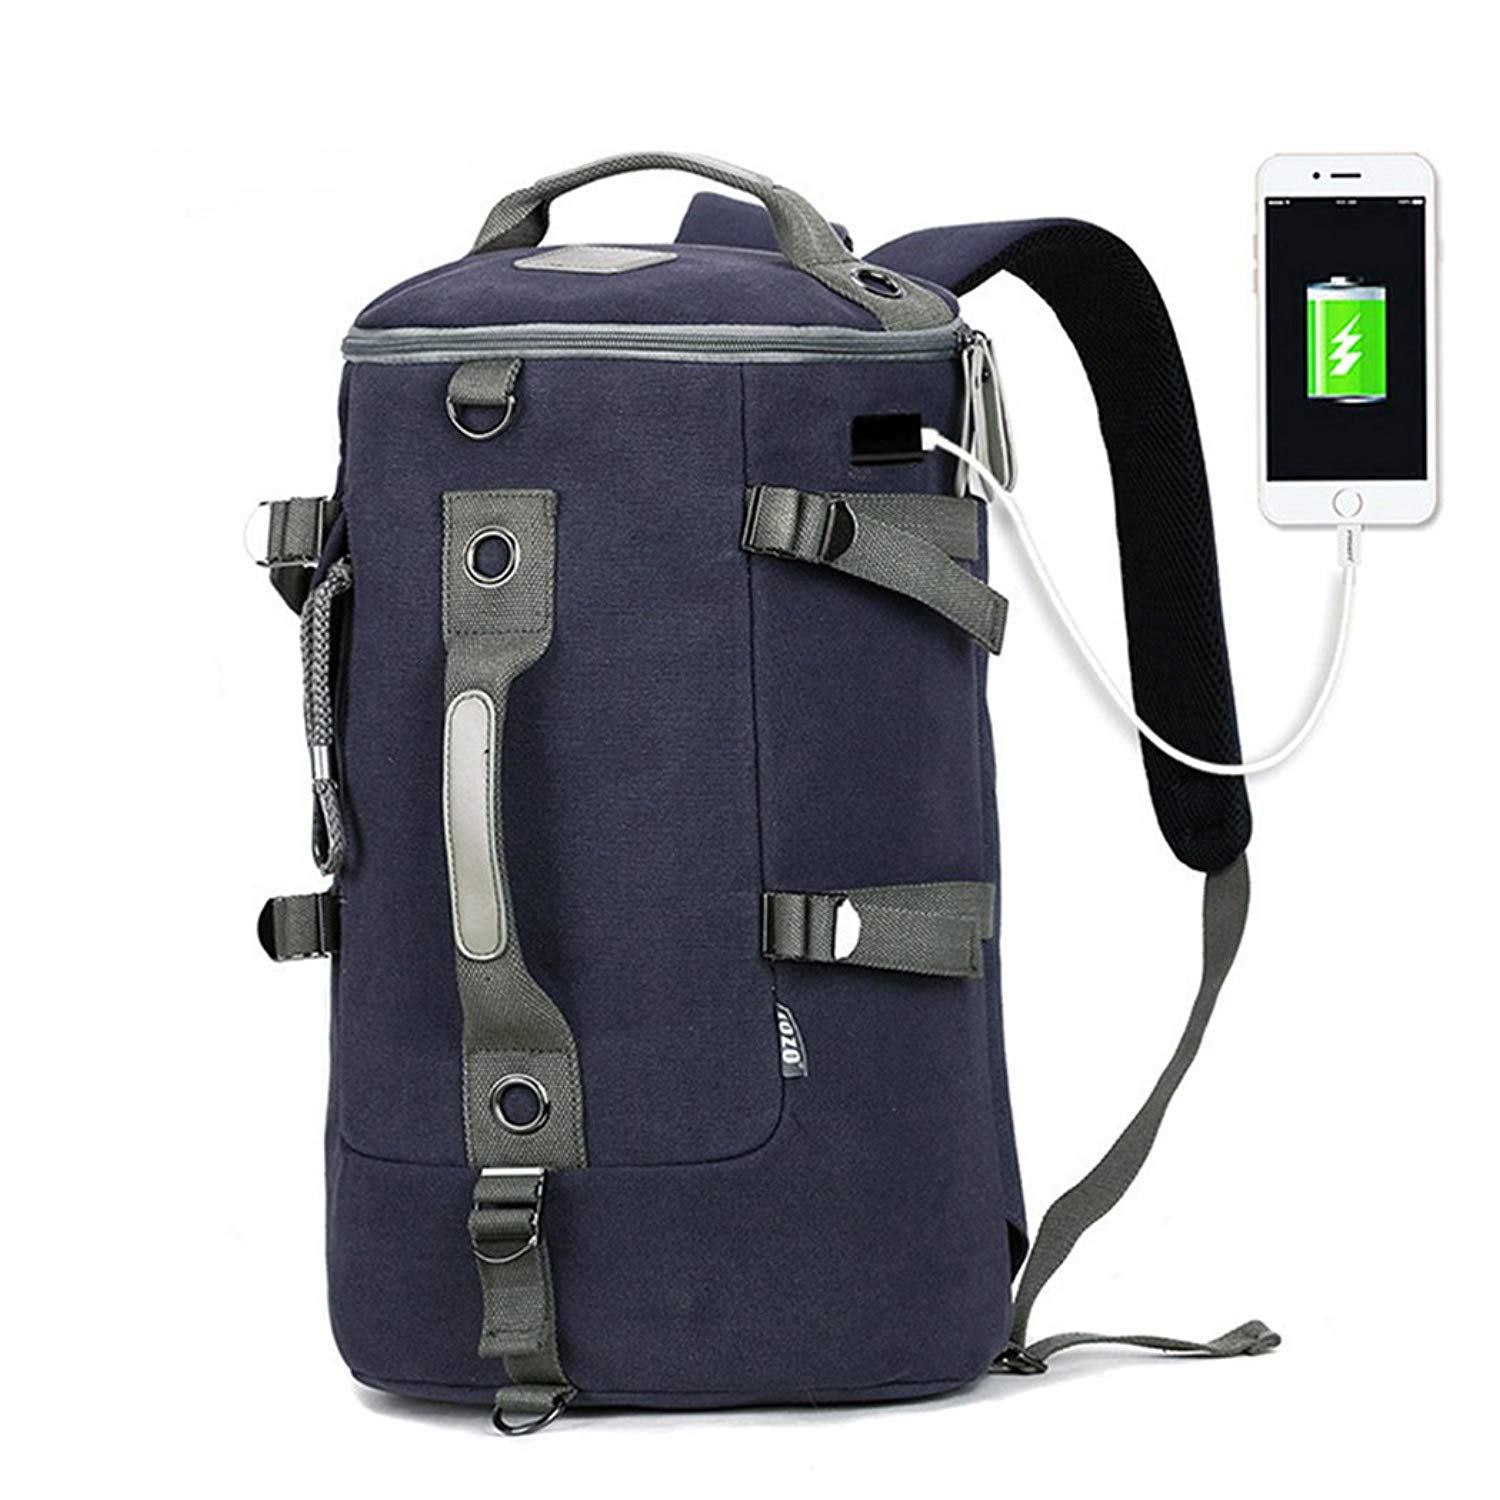 6b26290535 Get Quotations · Vbiger Canvas Duffel Backpack Vintage Weekend Travel Duffel  Bag Hiking Rucksack with USB Charging Port